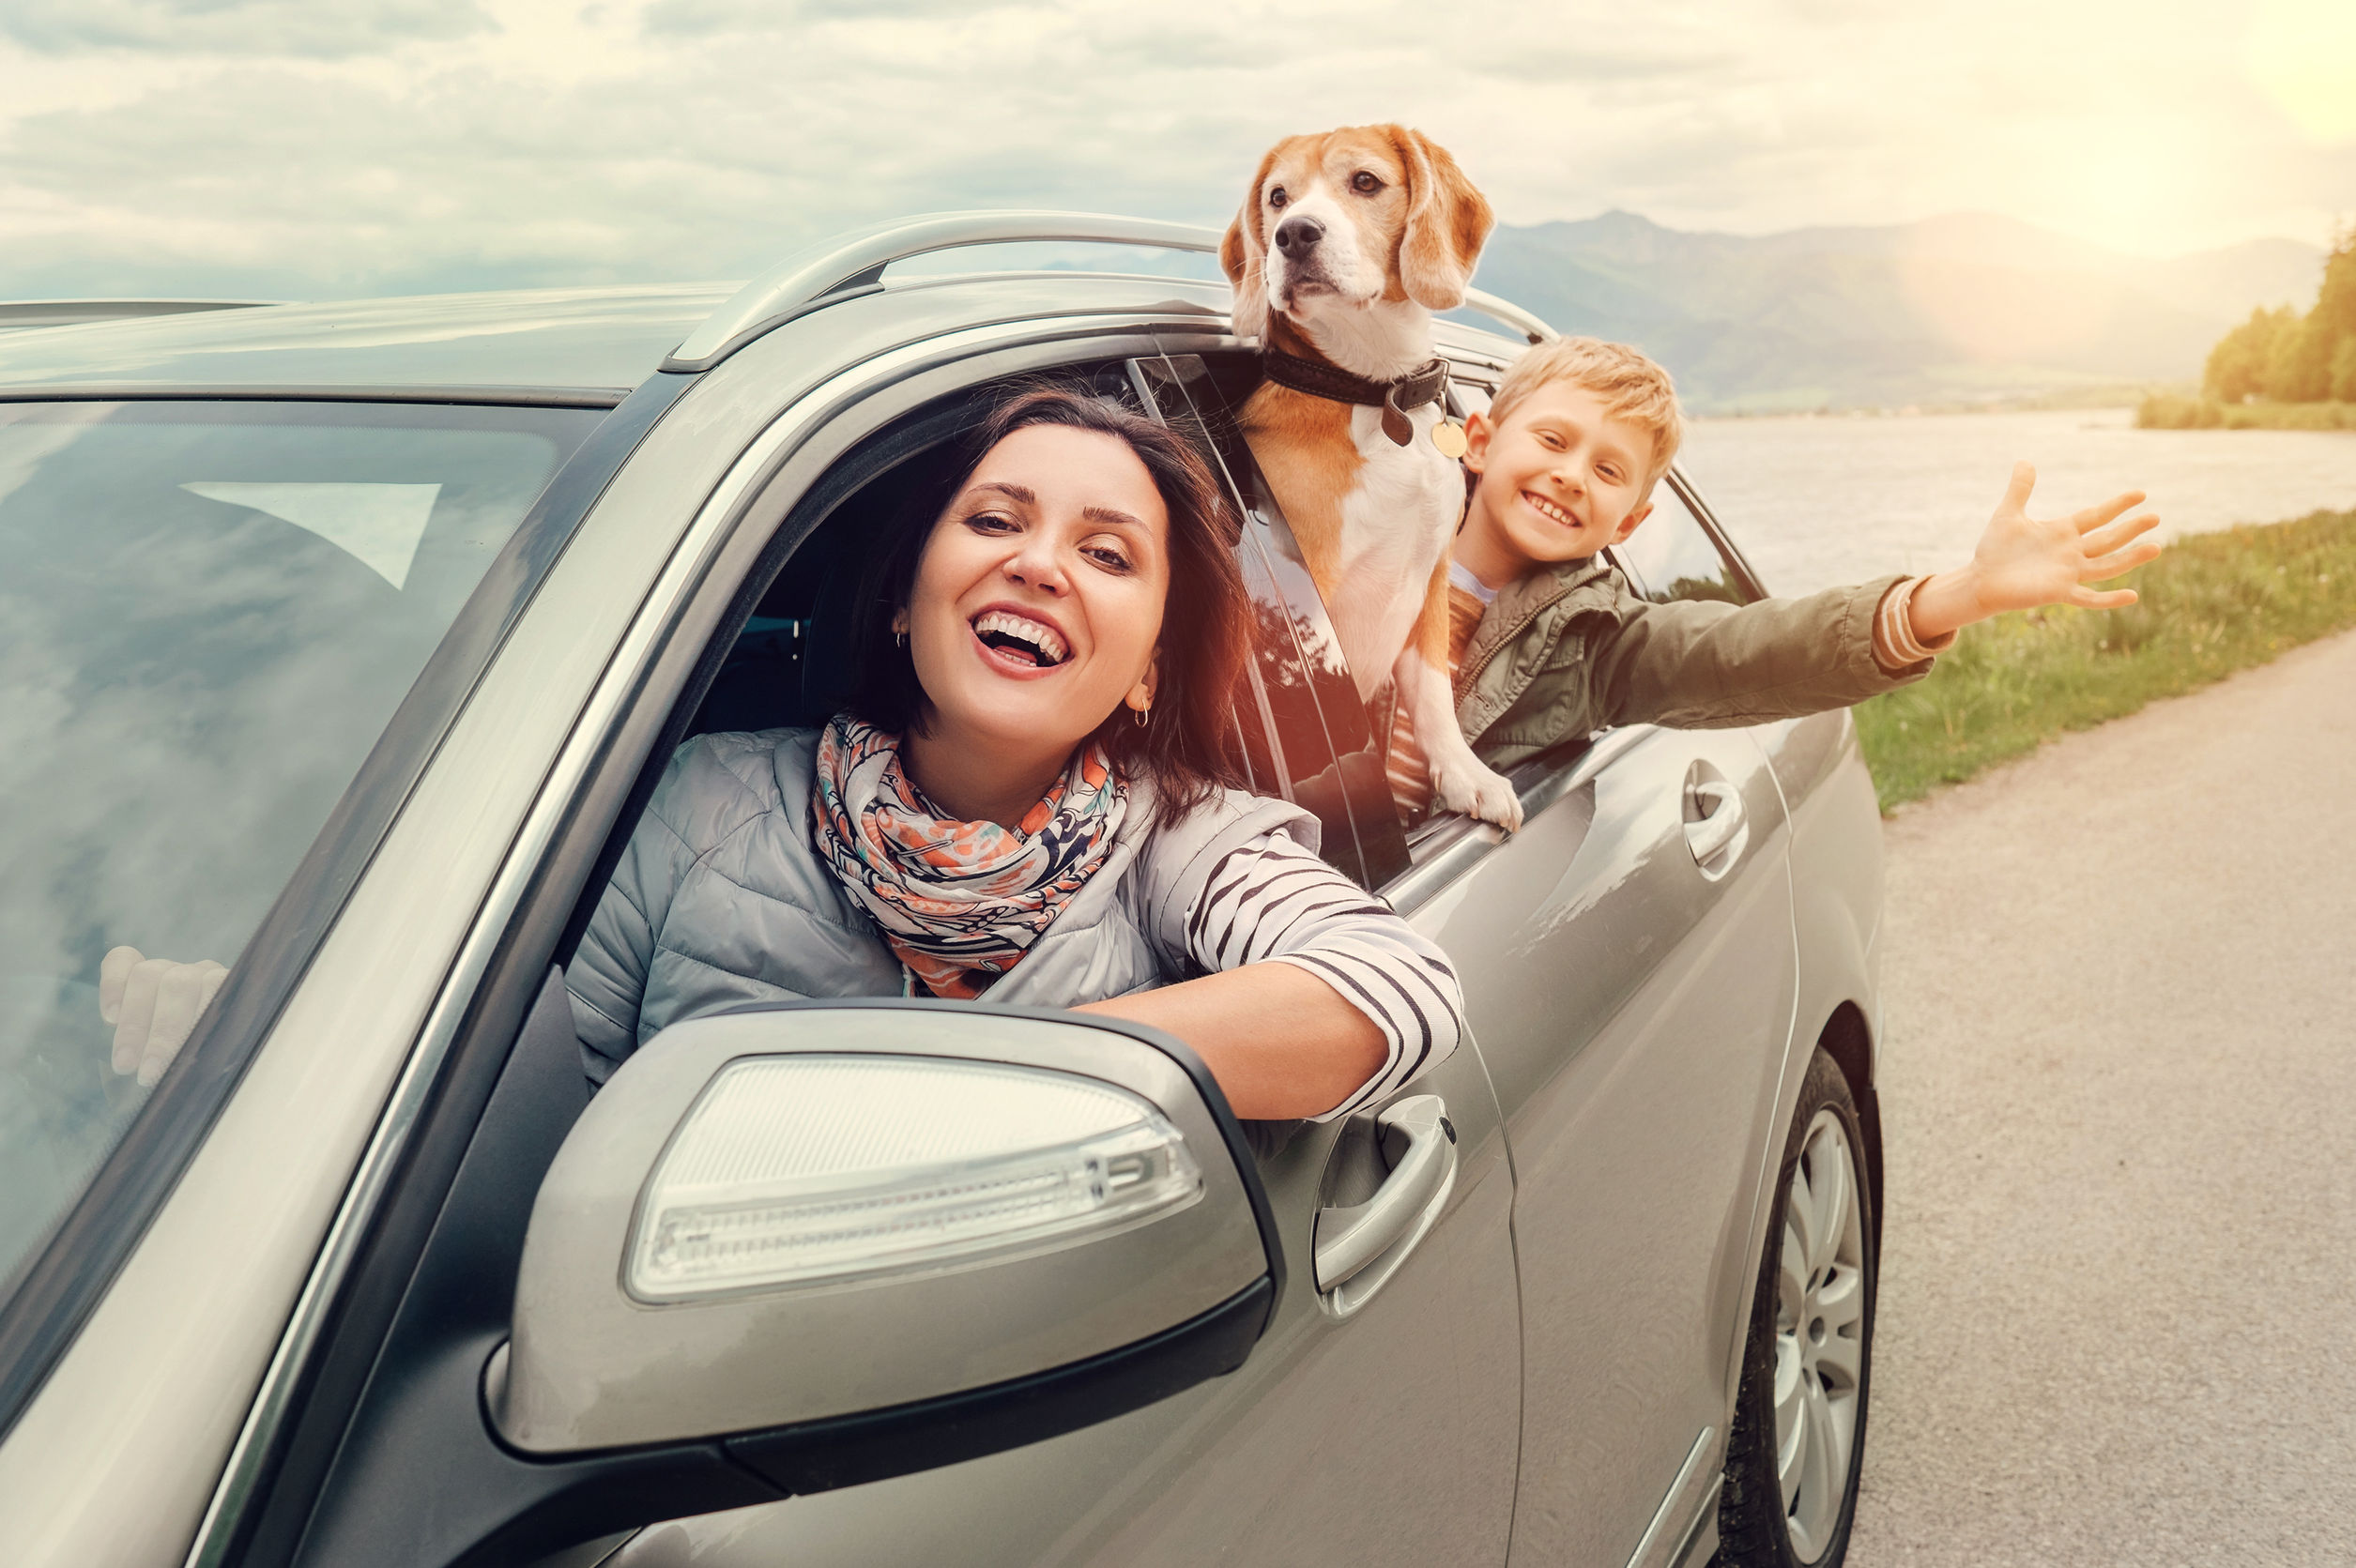 Becoming Well-Versed in Auto Insurance Image